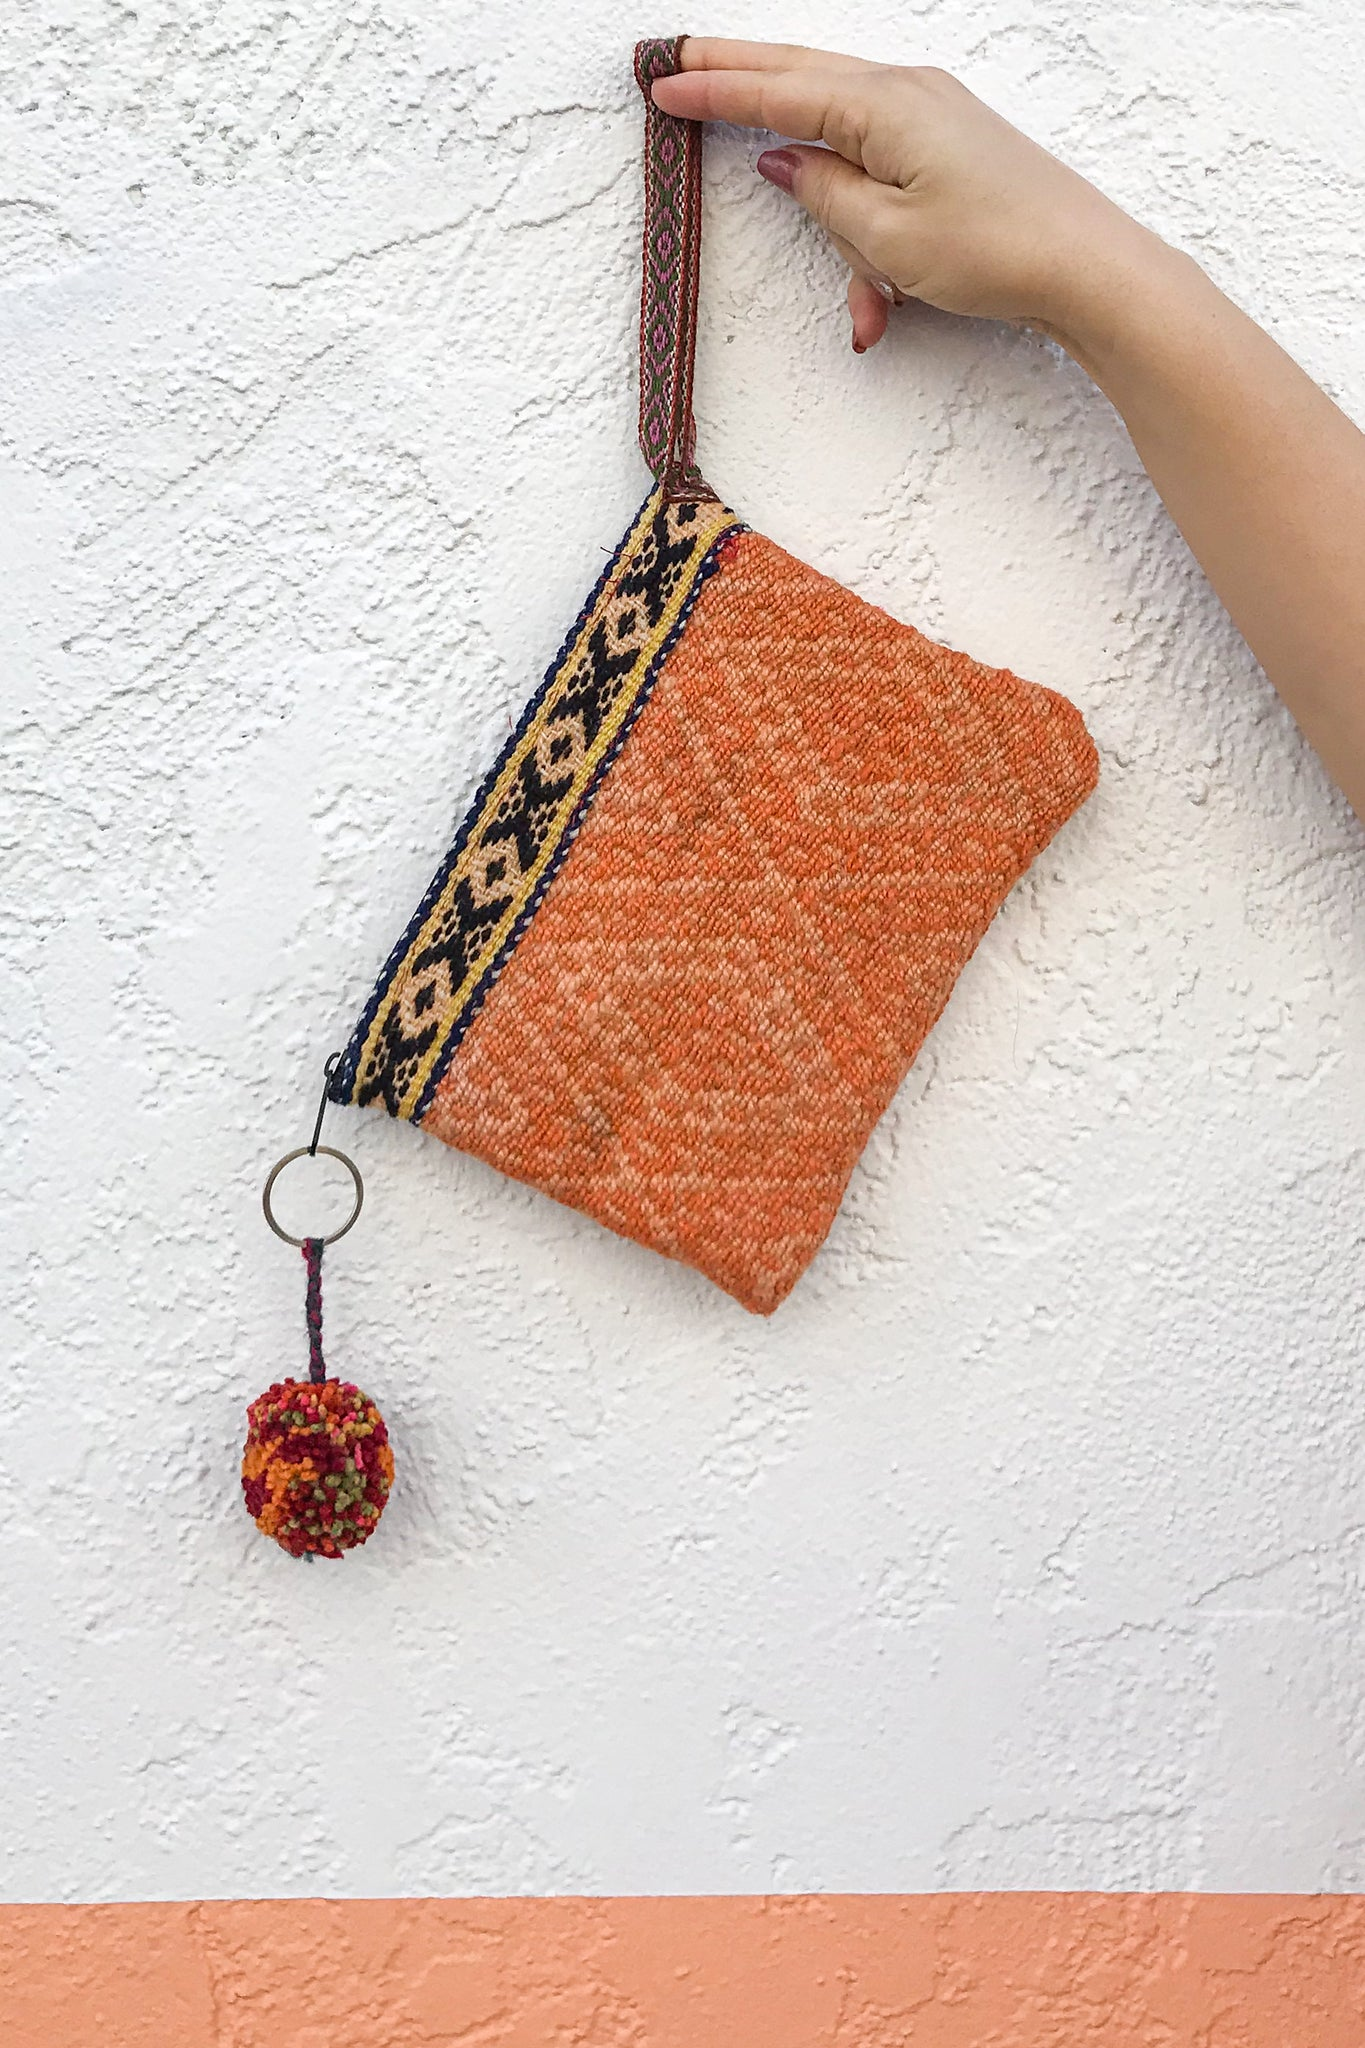 Peachy Days Wool Wristlet - Wild Hearts & Halos